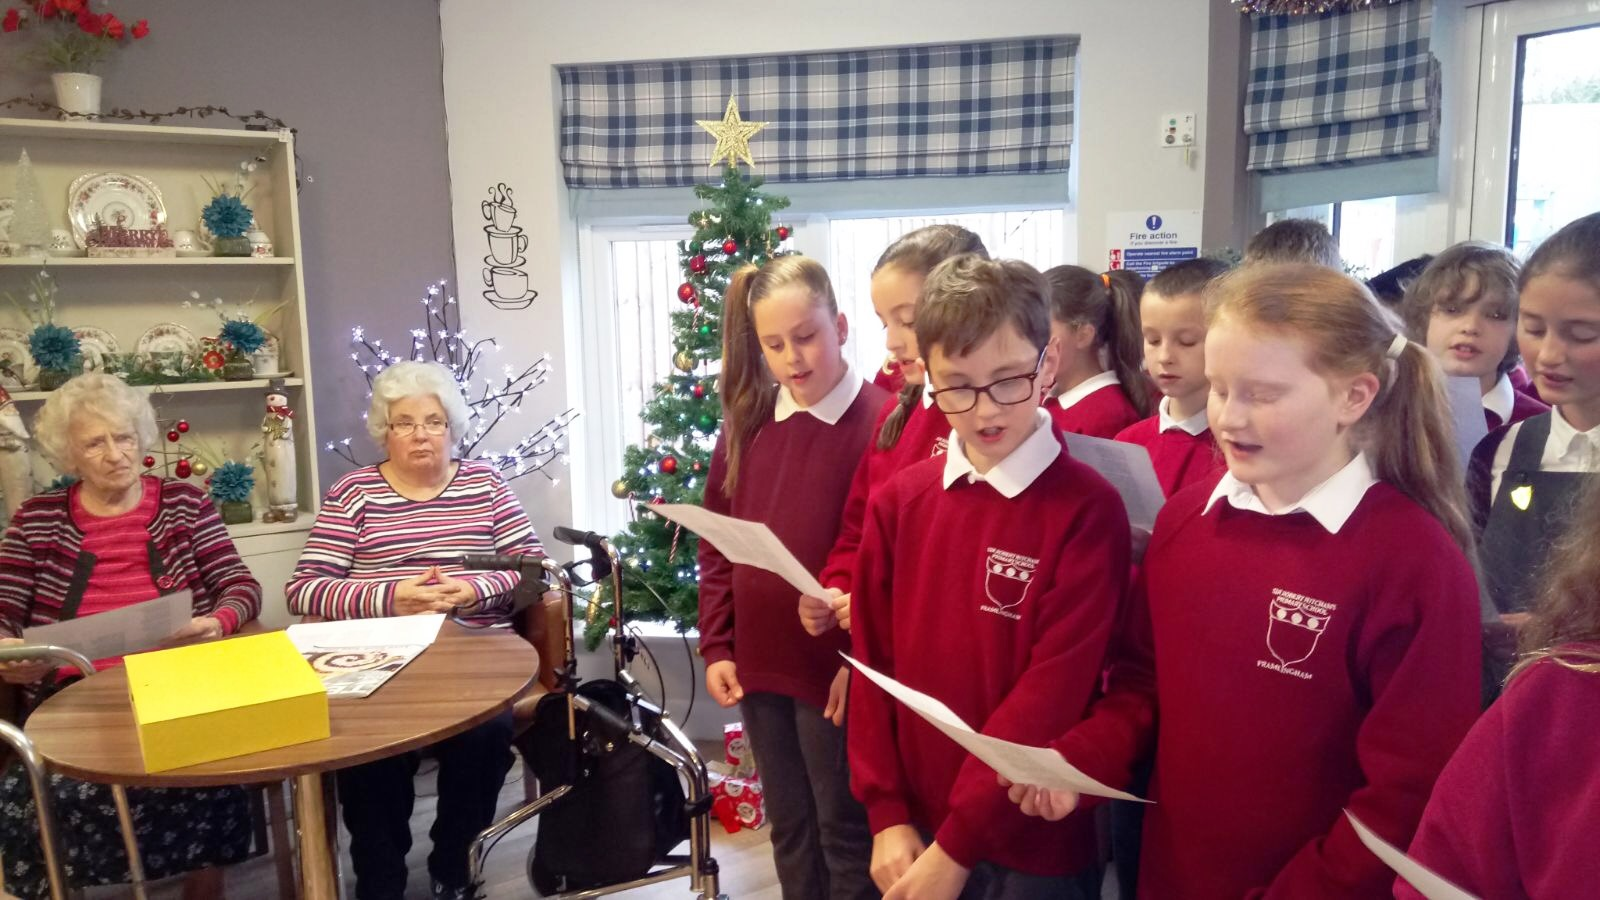 Christmas Carol Singers Decorations.Hitcham S Blog Mills Meadow Visited By Year 6 Carol Singers